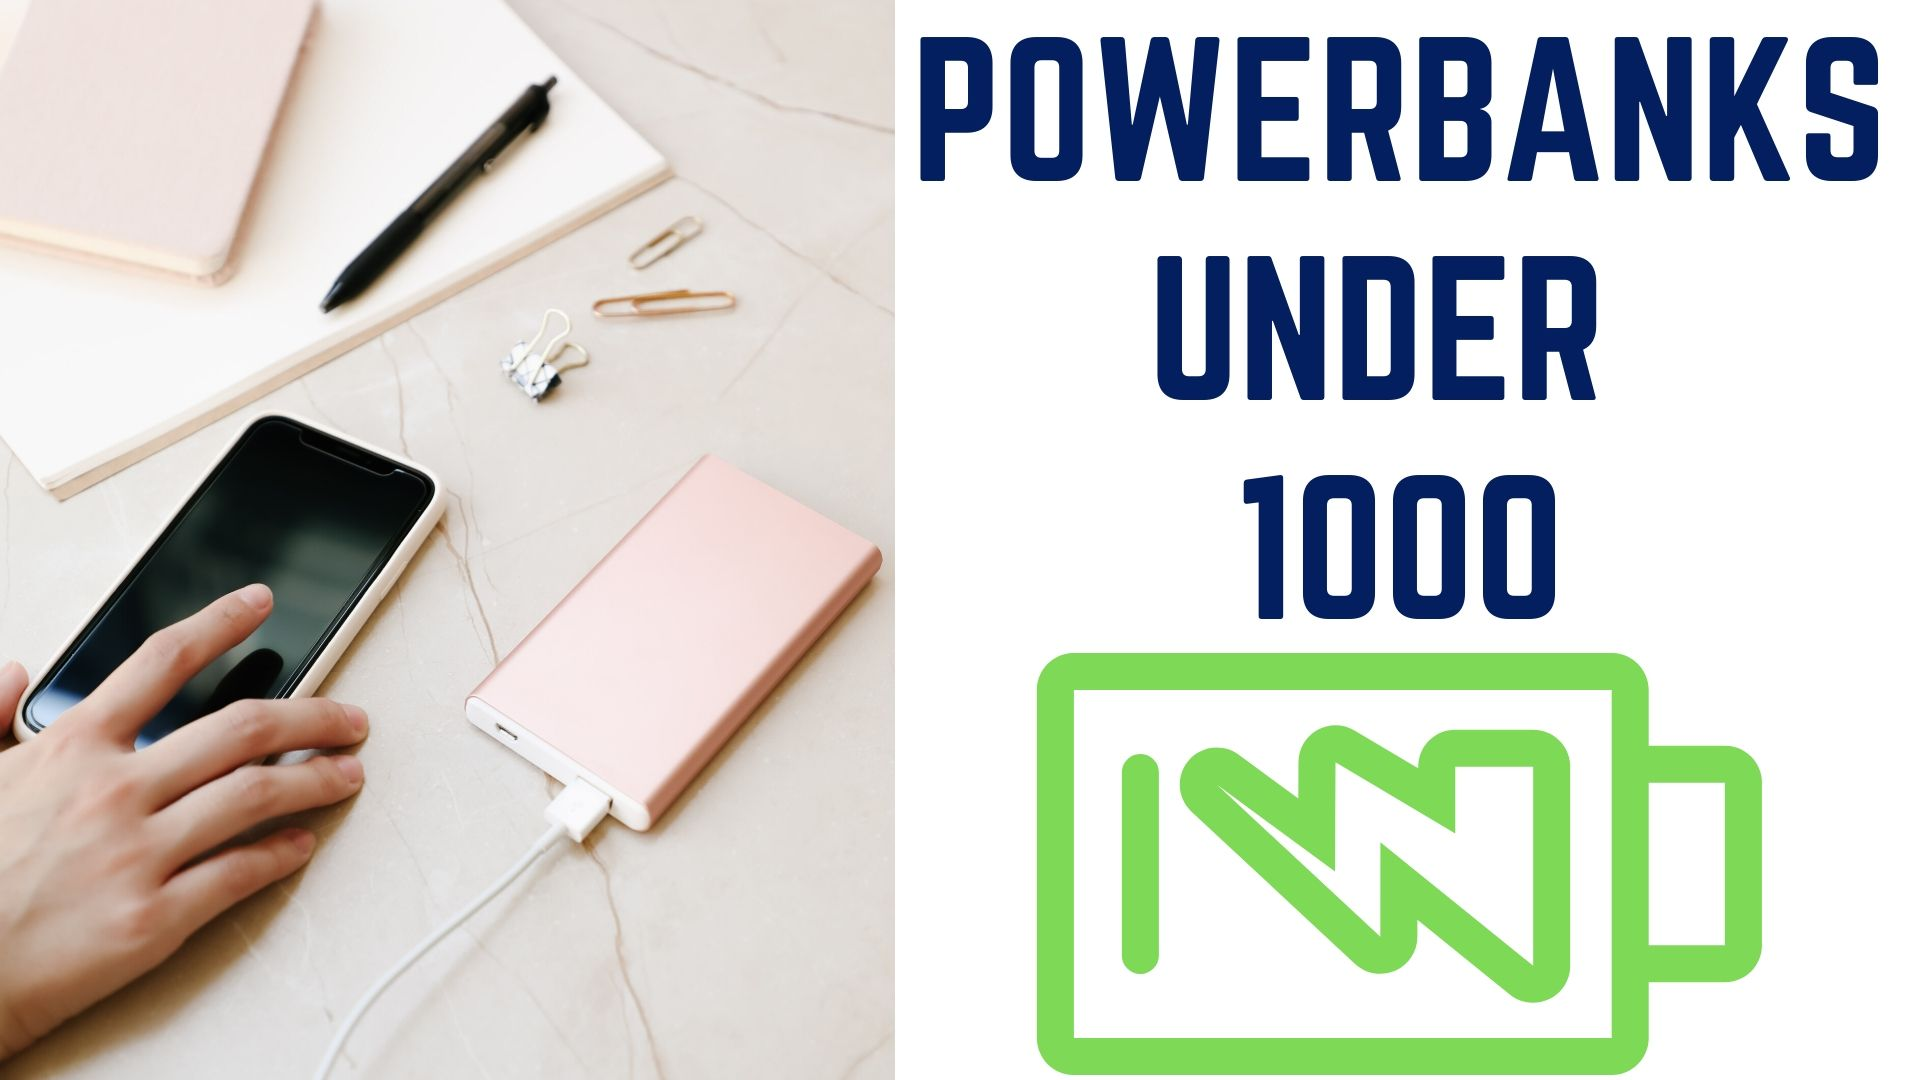 Powerbanks Under 1000